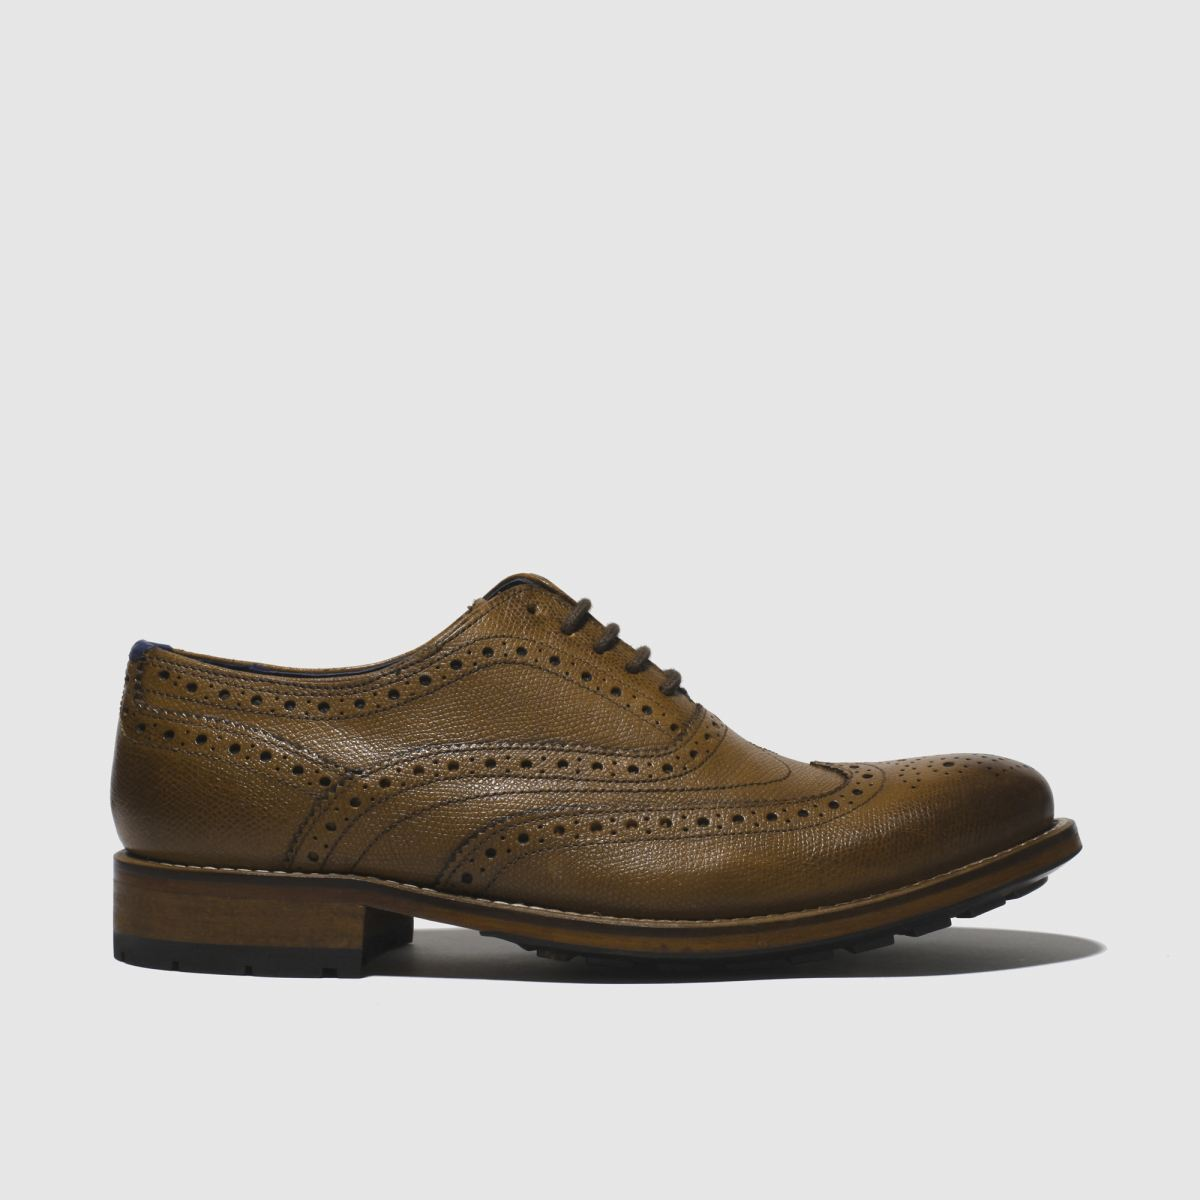 Ted Baker Tan Guri 9 Shoes